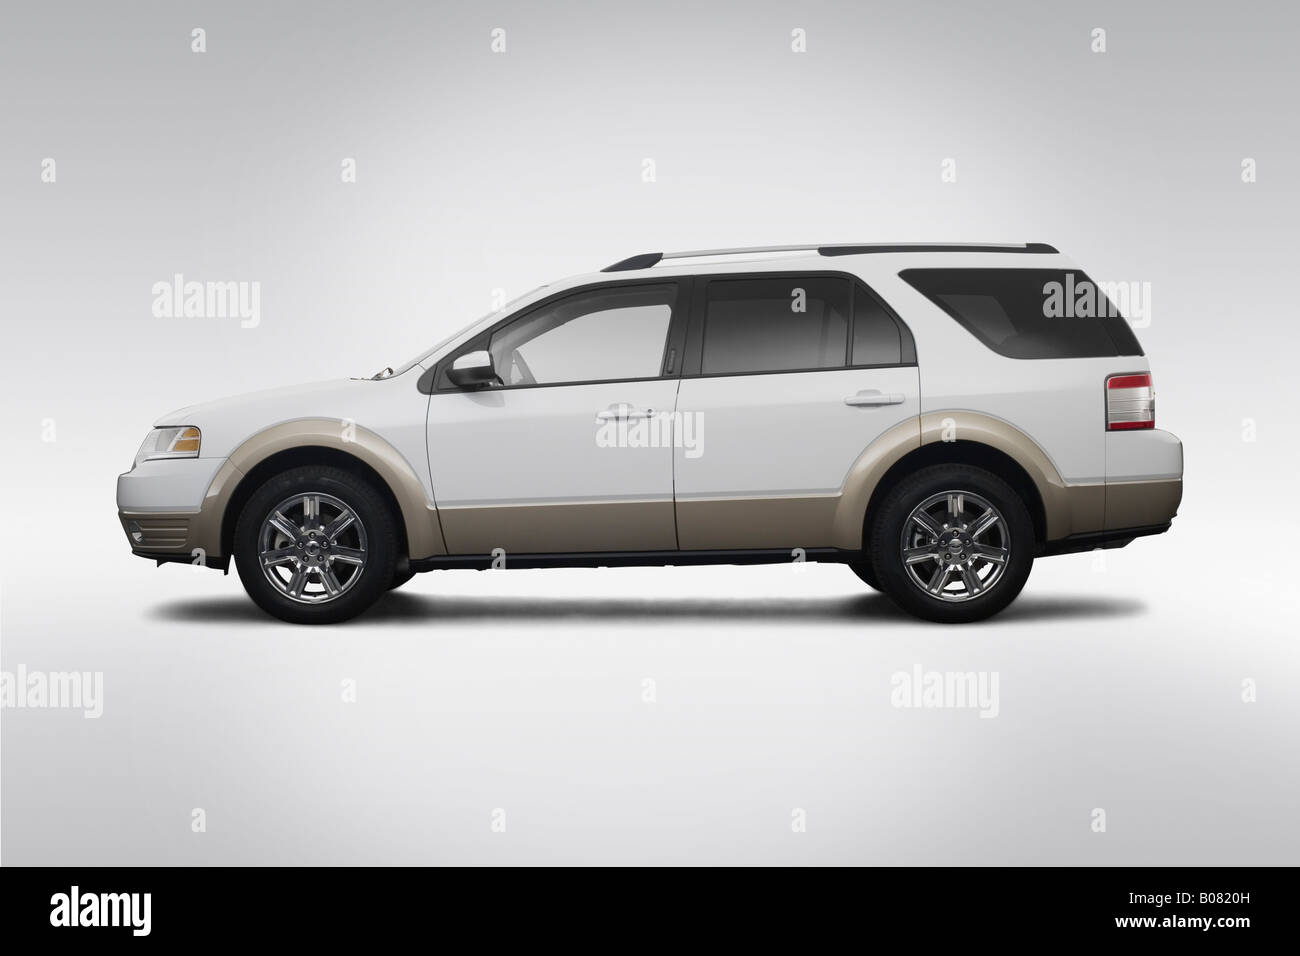 2008 ford taurus x eddie bauer in white drivers side profile